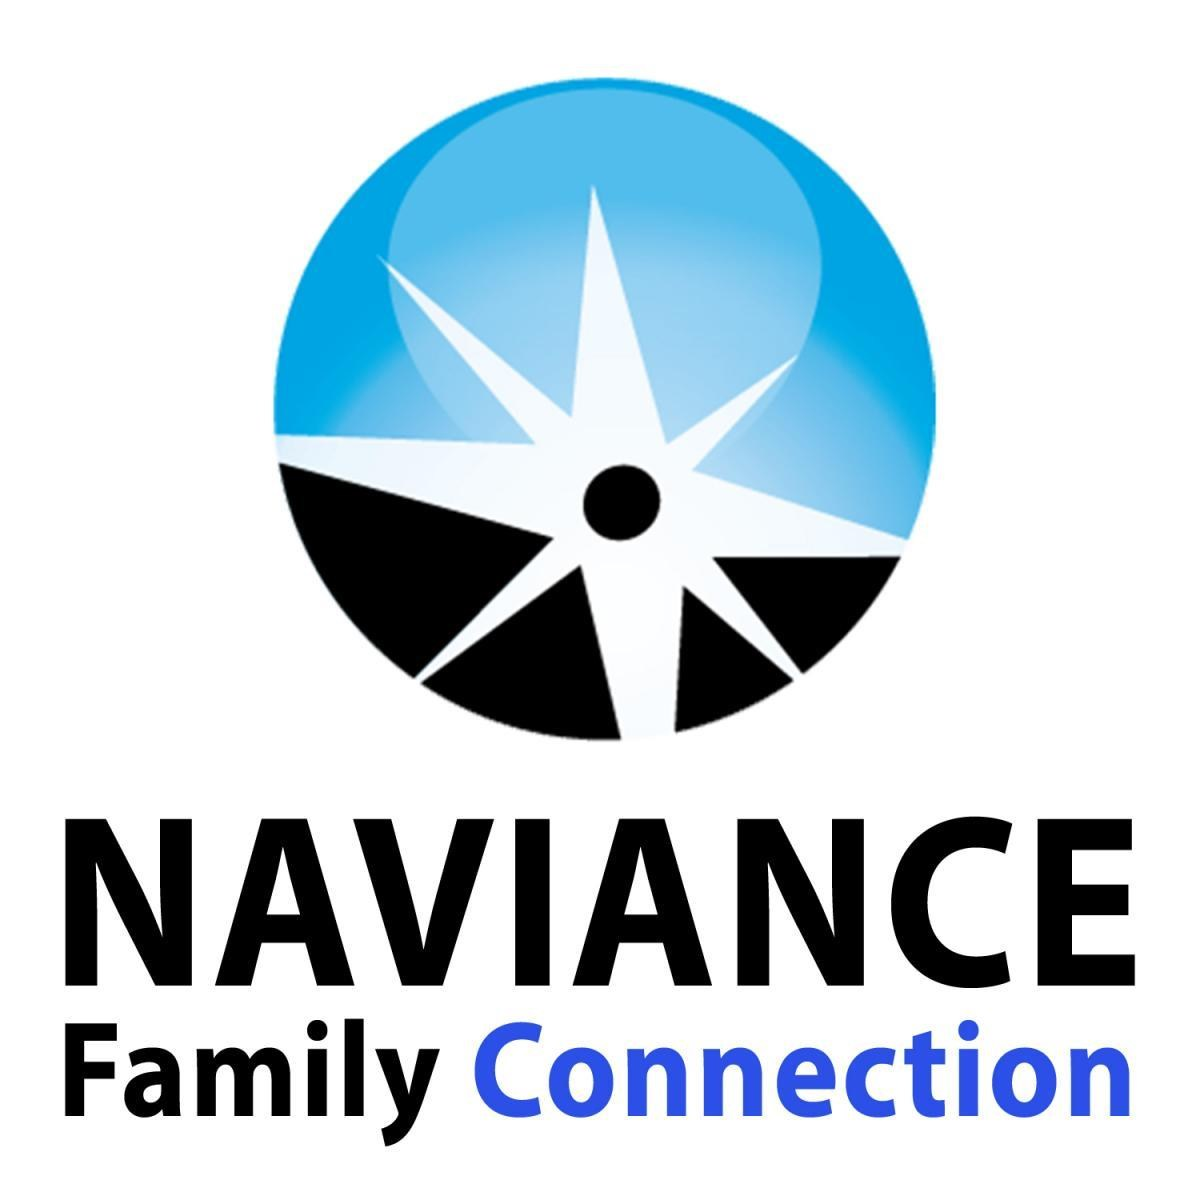 naviance family connection college and career advising and career readiness platform that is provided for all pcs 7th 12th grade students that enables self discovery career exploration academic planning